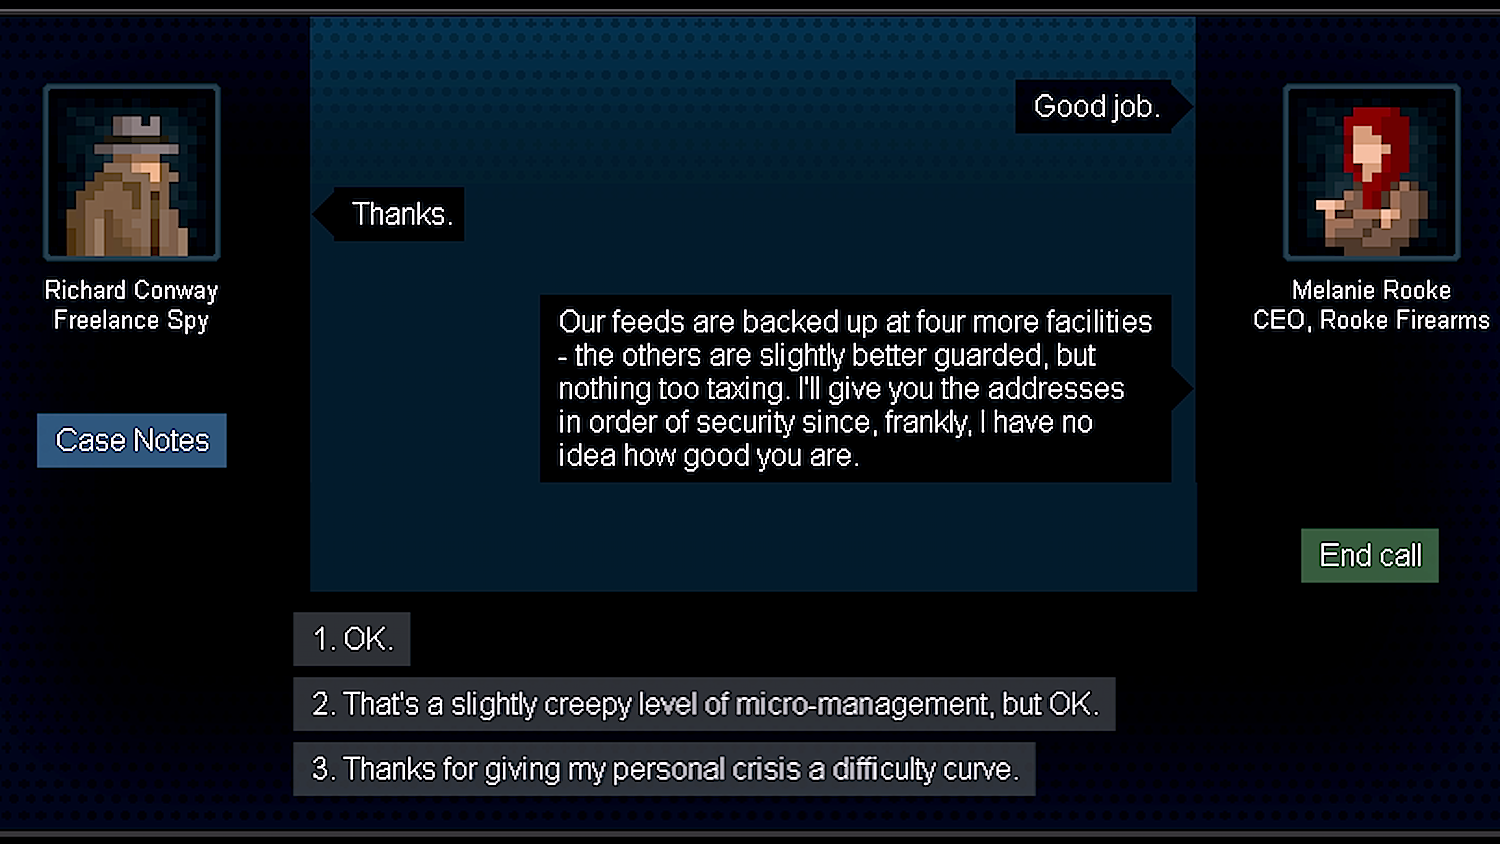 """""""Thanks for giving my personal crisis a difficulty curve."""" Ametafictionalline that forces a certain atmosphere onto this exchange — makes it a game whether you want to play it straight or not."""